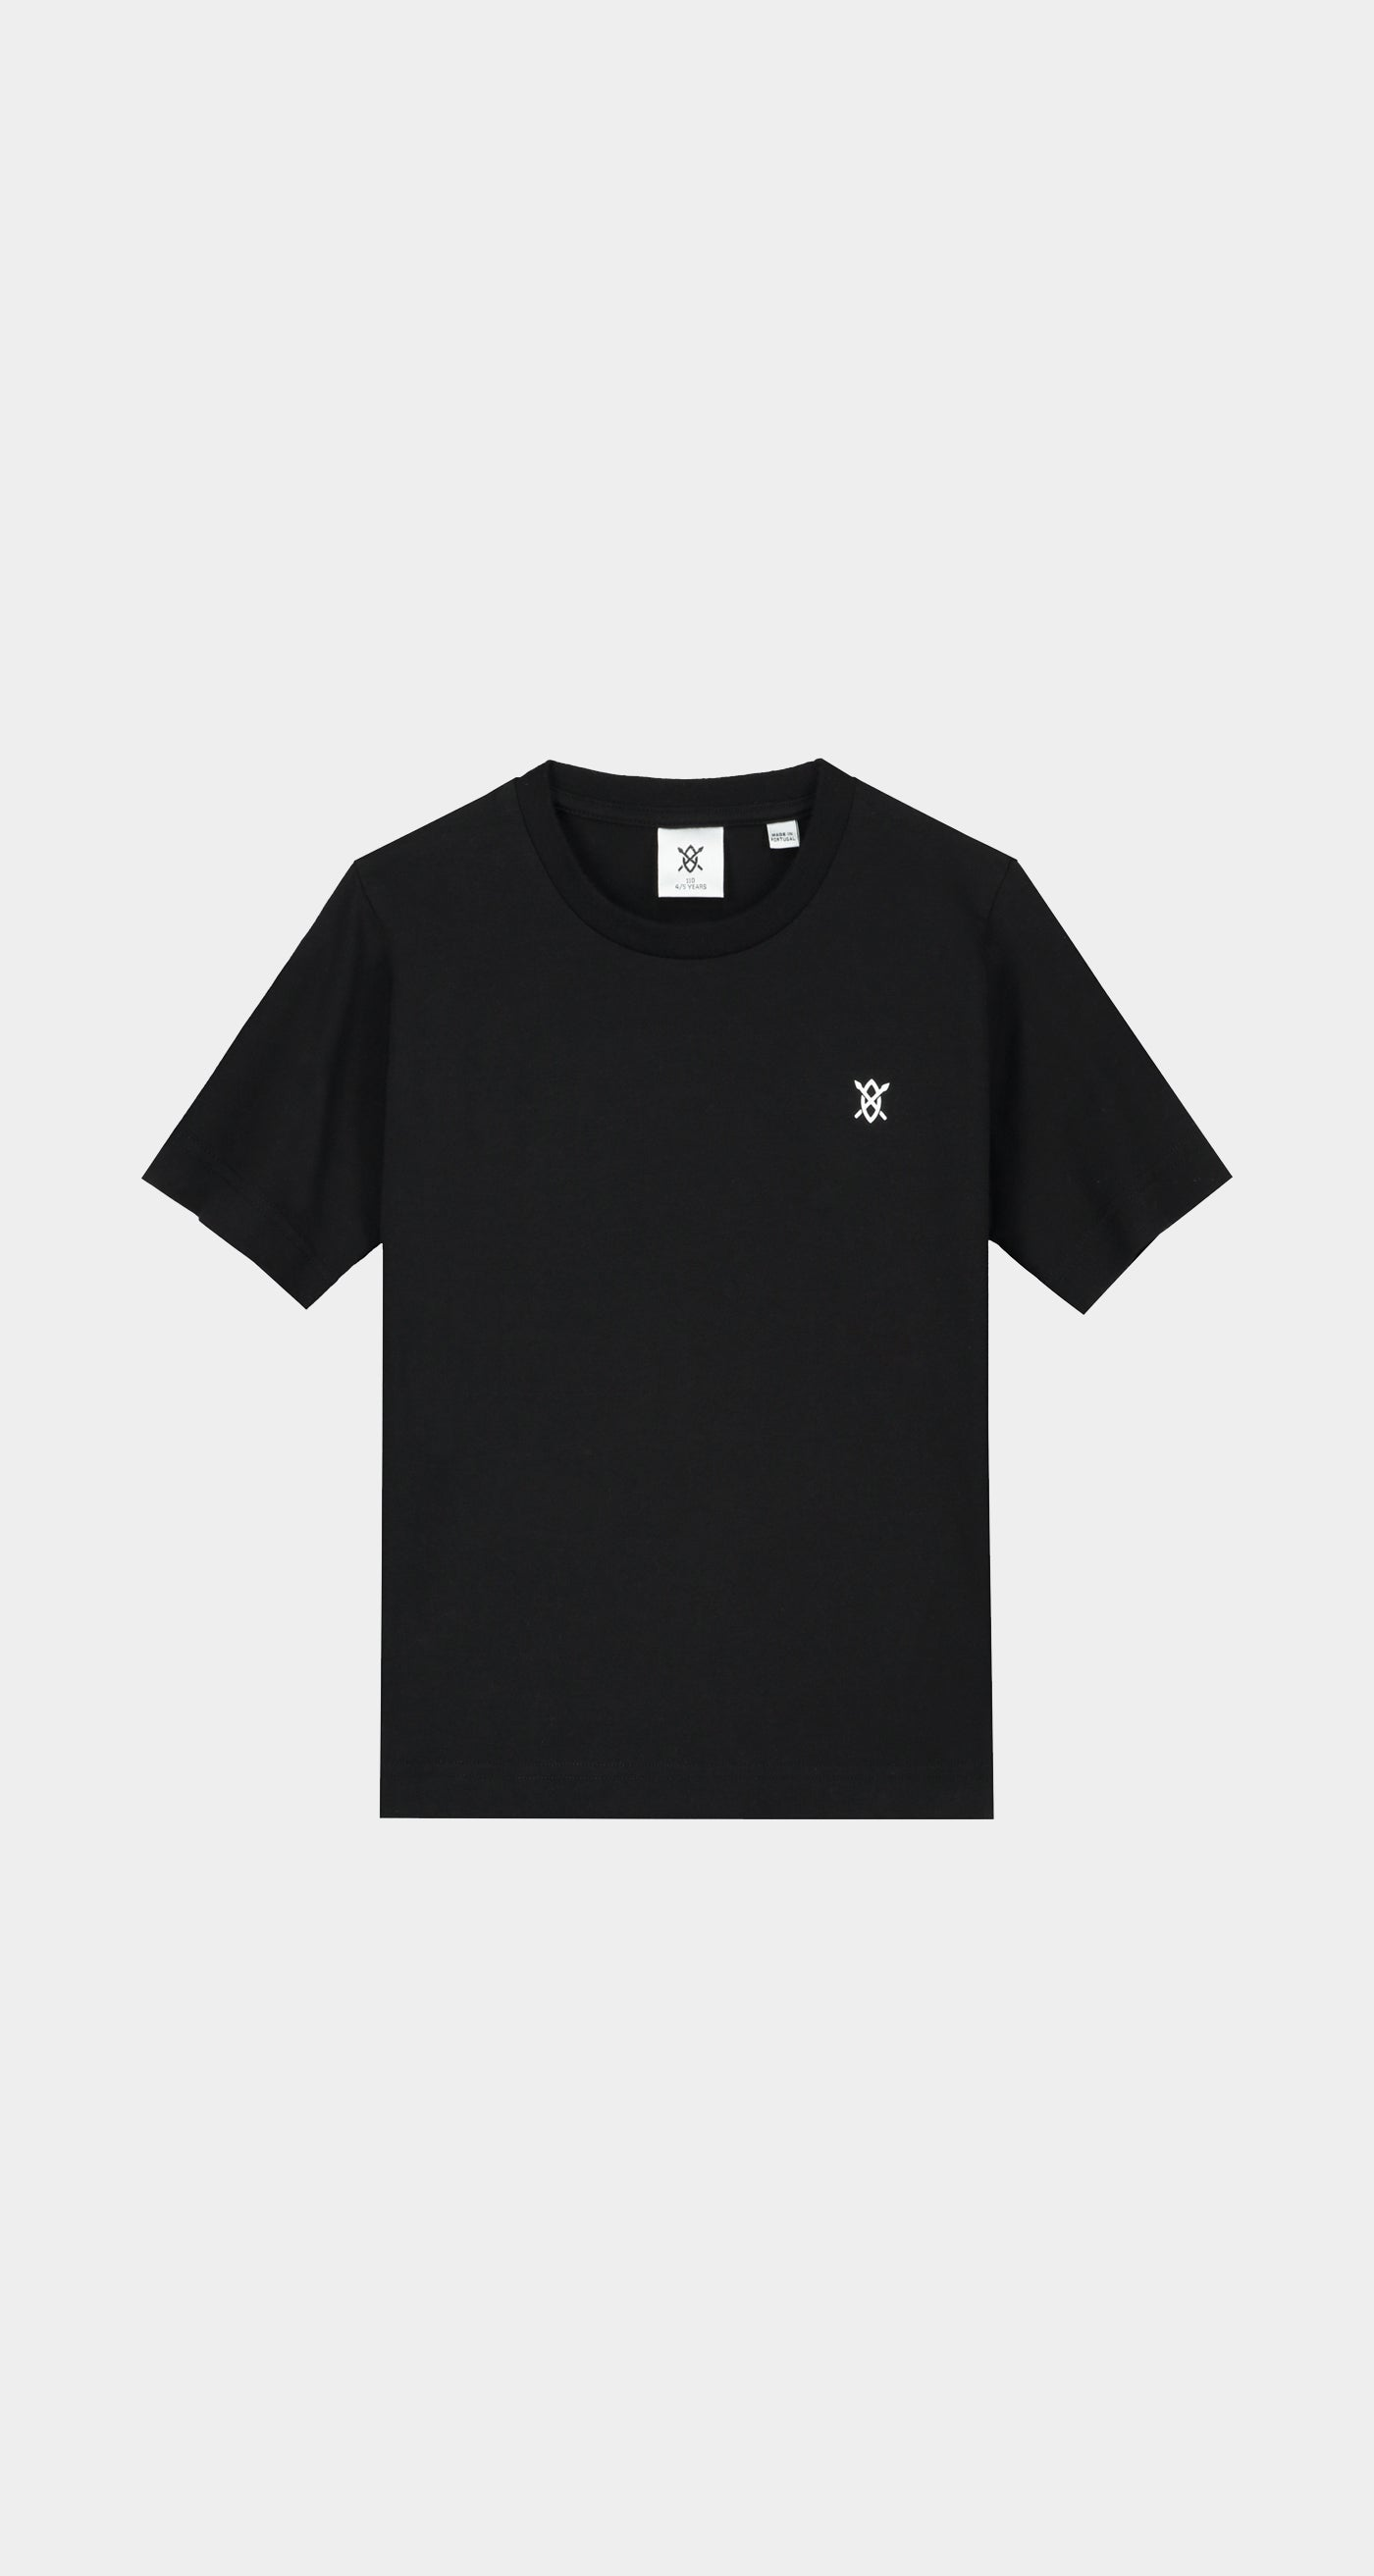 Daily Paper - Black Kids Amsterdam Store T-Shirt NEW - Front